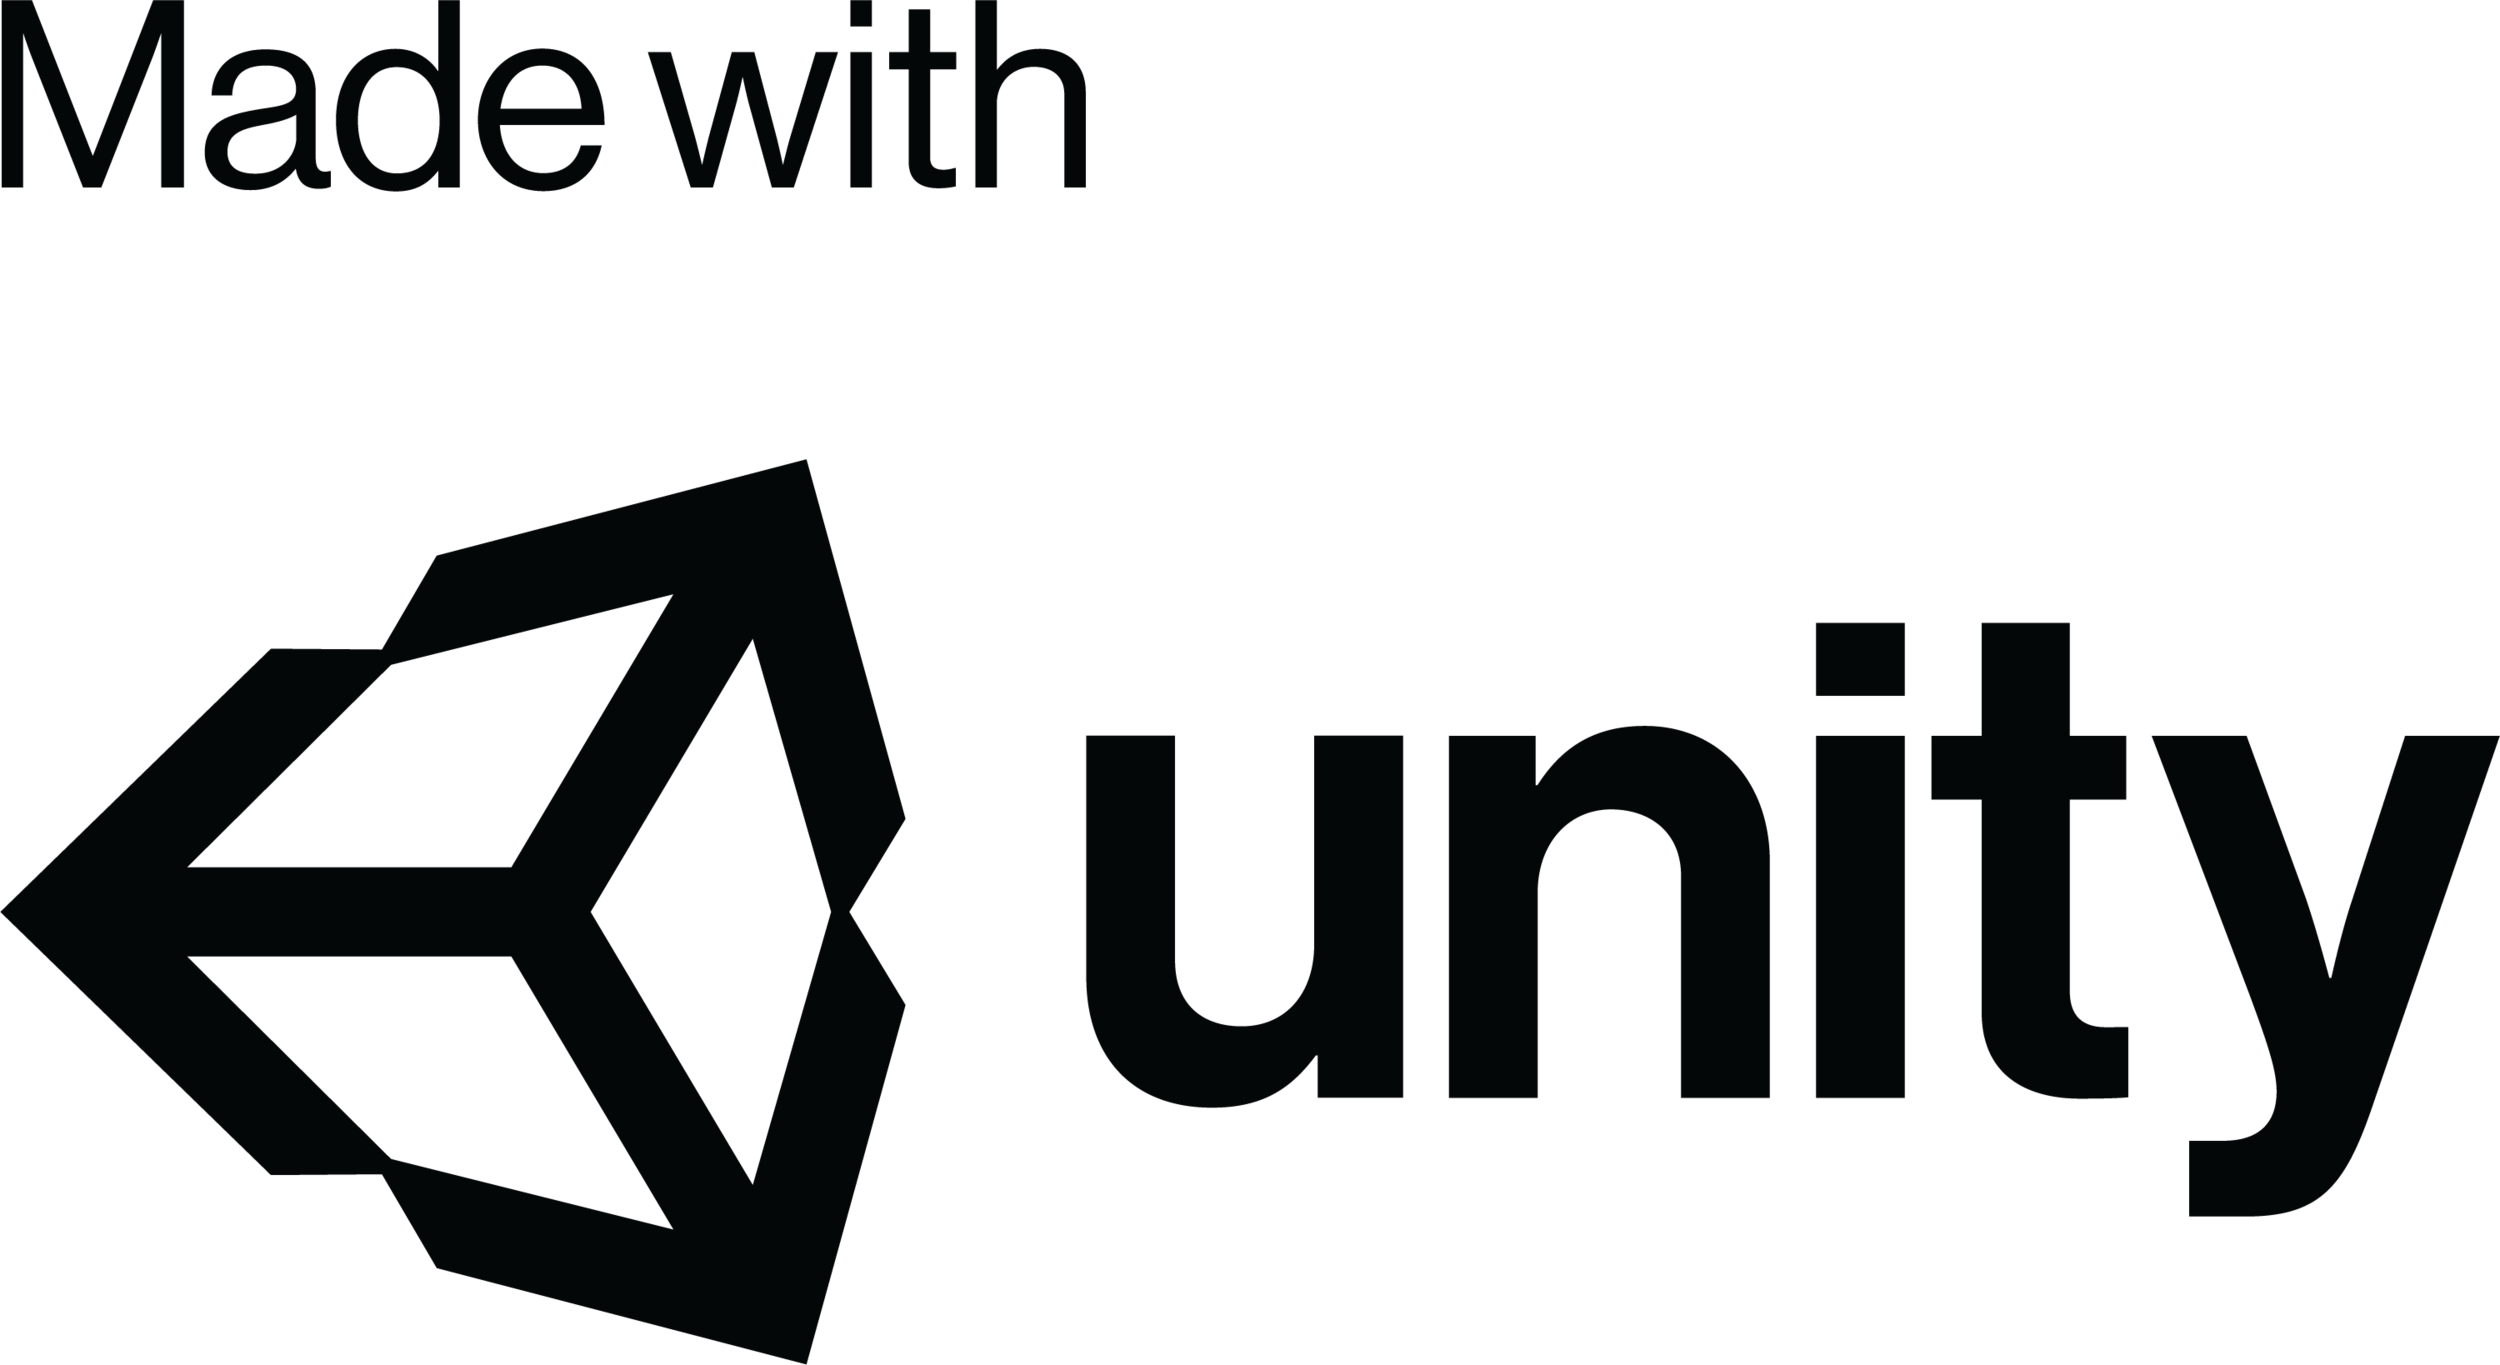 made-with-unity-black.png